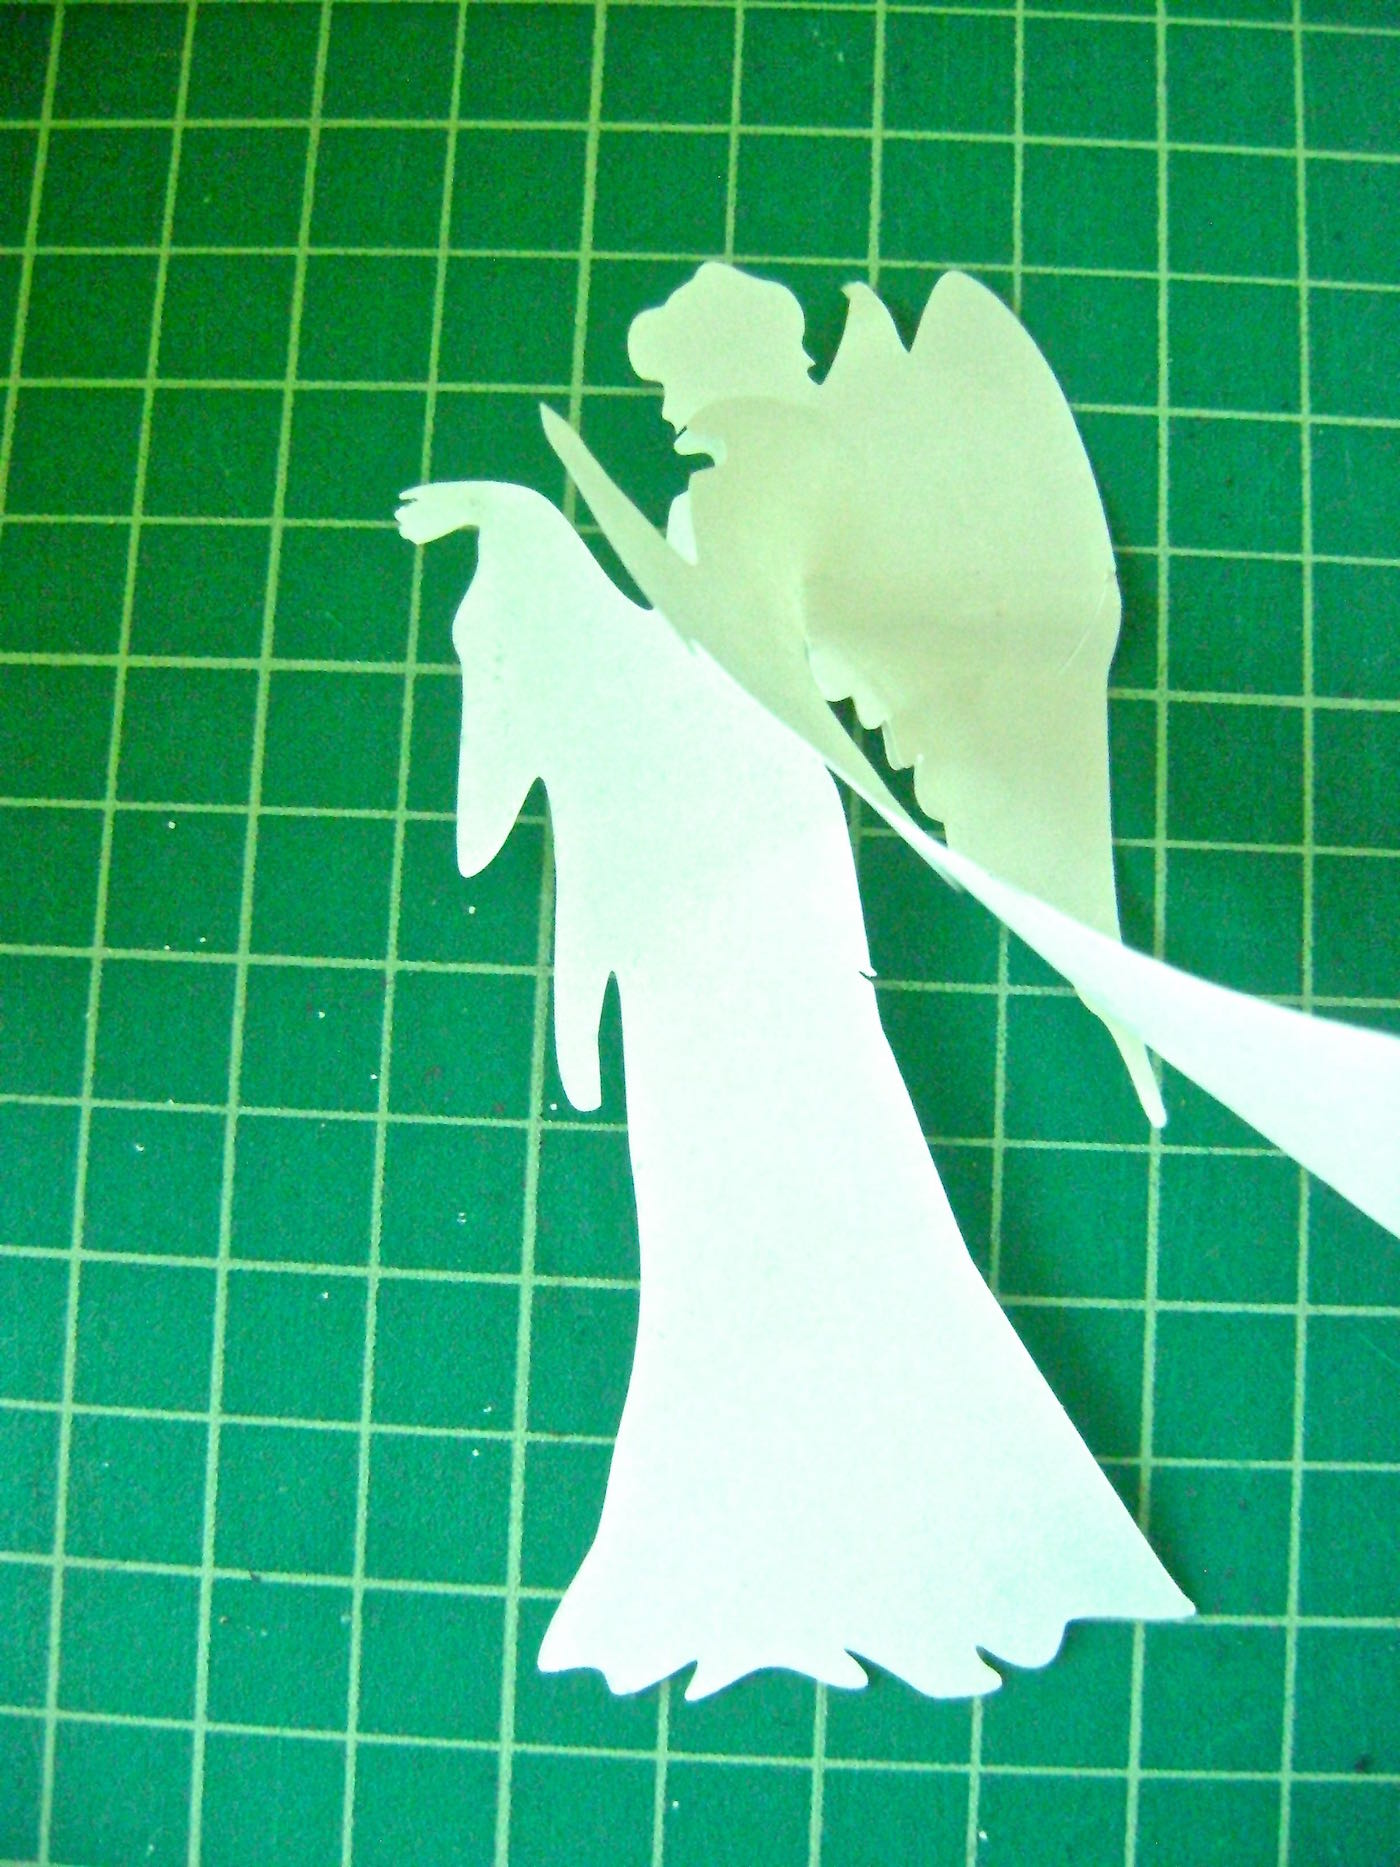 step 2 - Use a craft knife to cut out the stencil. It's not necessary to cut out the halo. It's only provided as a guide for the wire halo size and placement later. Peel away the backing from the positive stencil image.